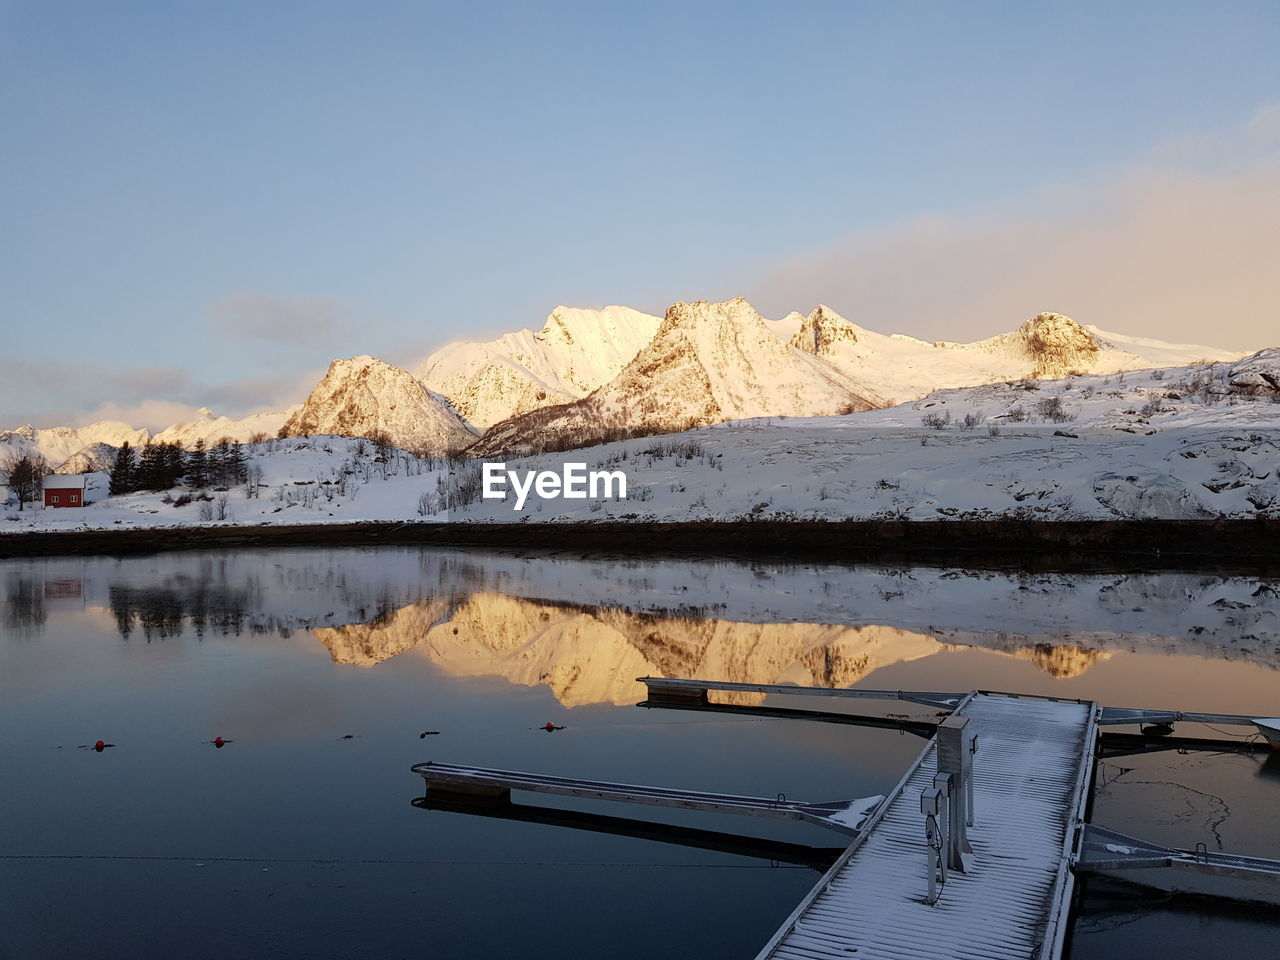 water, mountain, scenics - nature, sky, cold temperature, beauty in nature, lake, reflection, tranquil scene, tranquility, winter, mountain range, nature, snowcapped mountain, no people, snow, non-urban scene, nautical vessel, transportation, outdoors